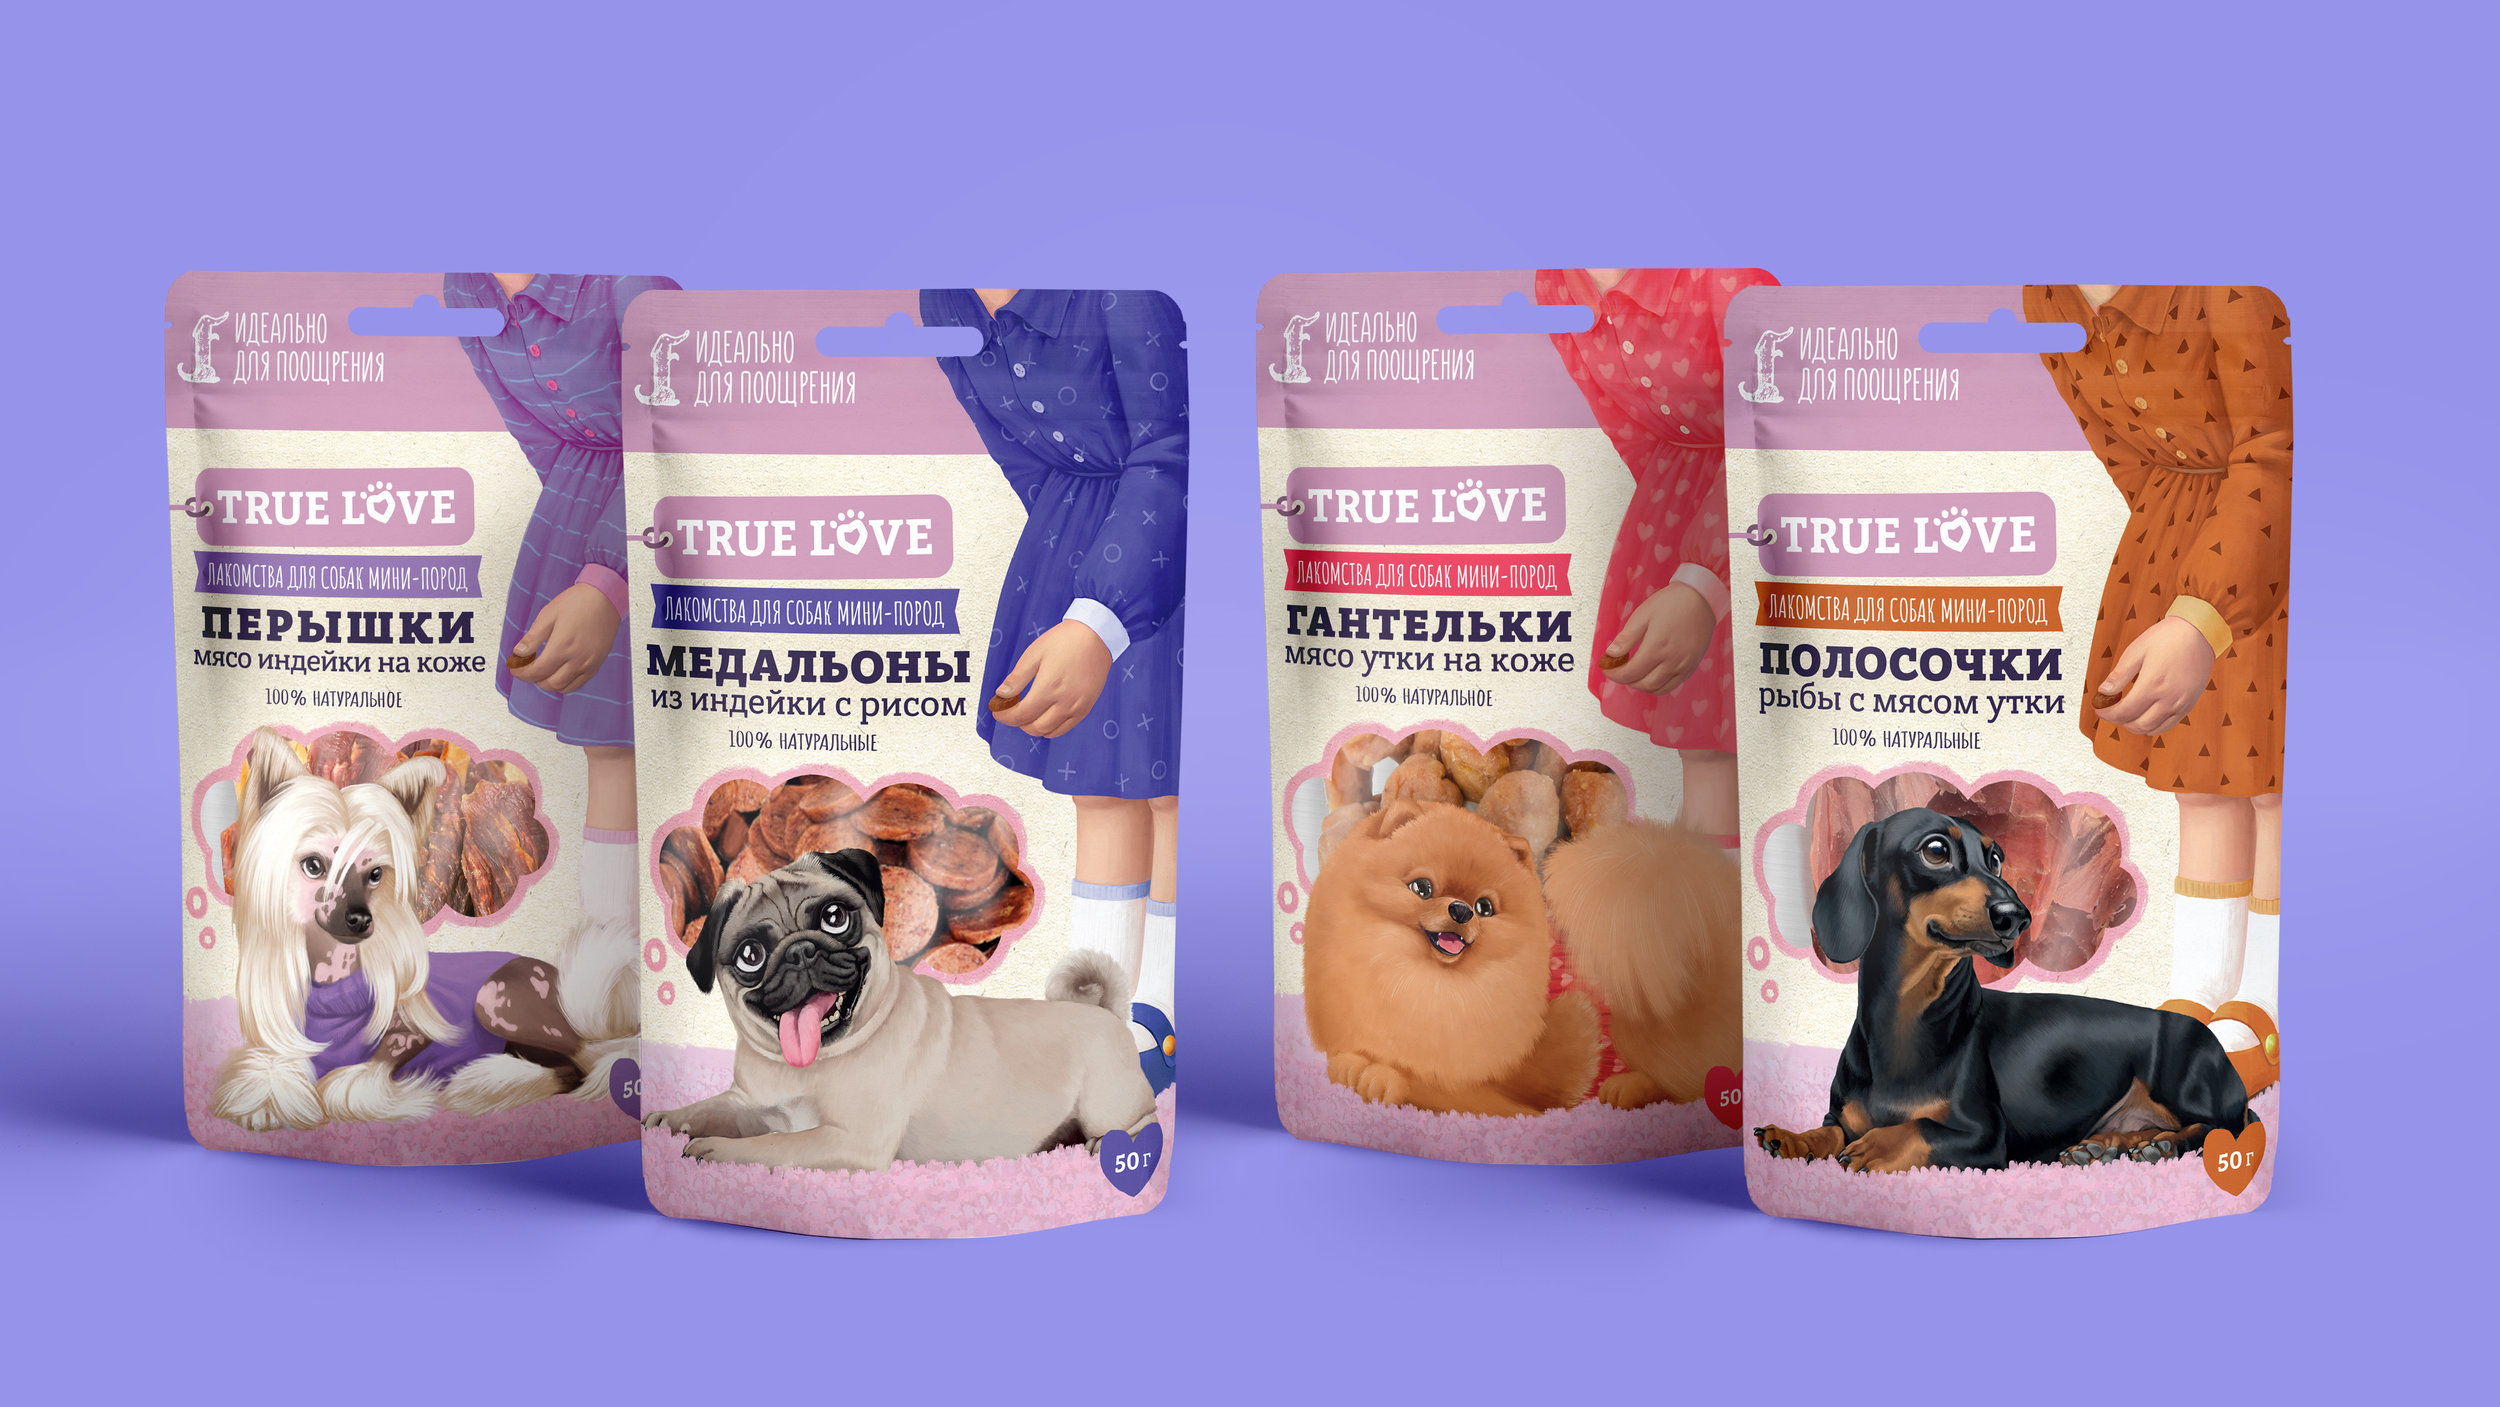 True Love- Delicious Treat for the Small and Tiny Dog Breeds / World Brand Design Society